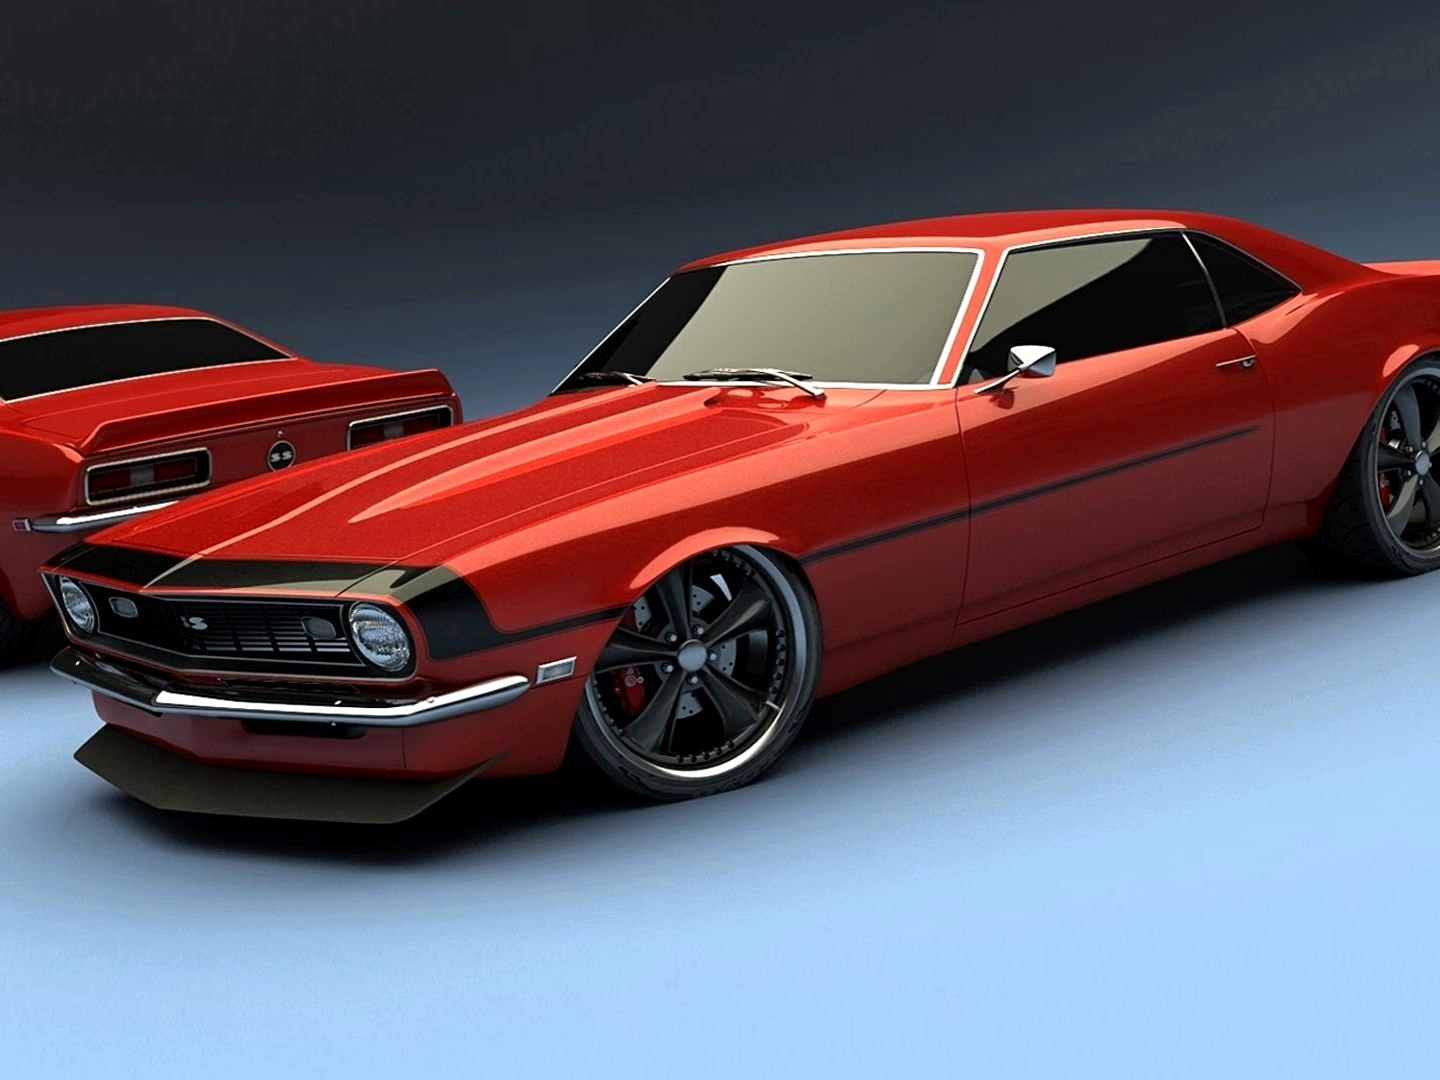 Chevrolet Camaro SS 1969 Wallpapers HD Download 1440x1080